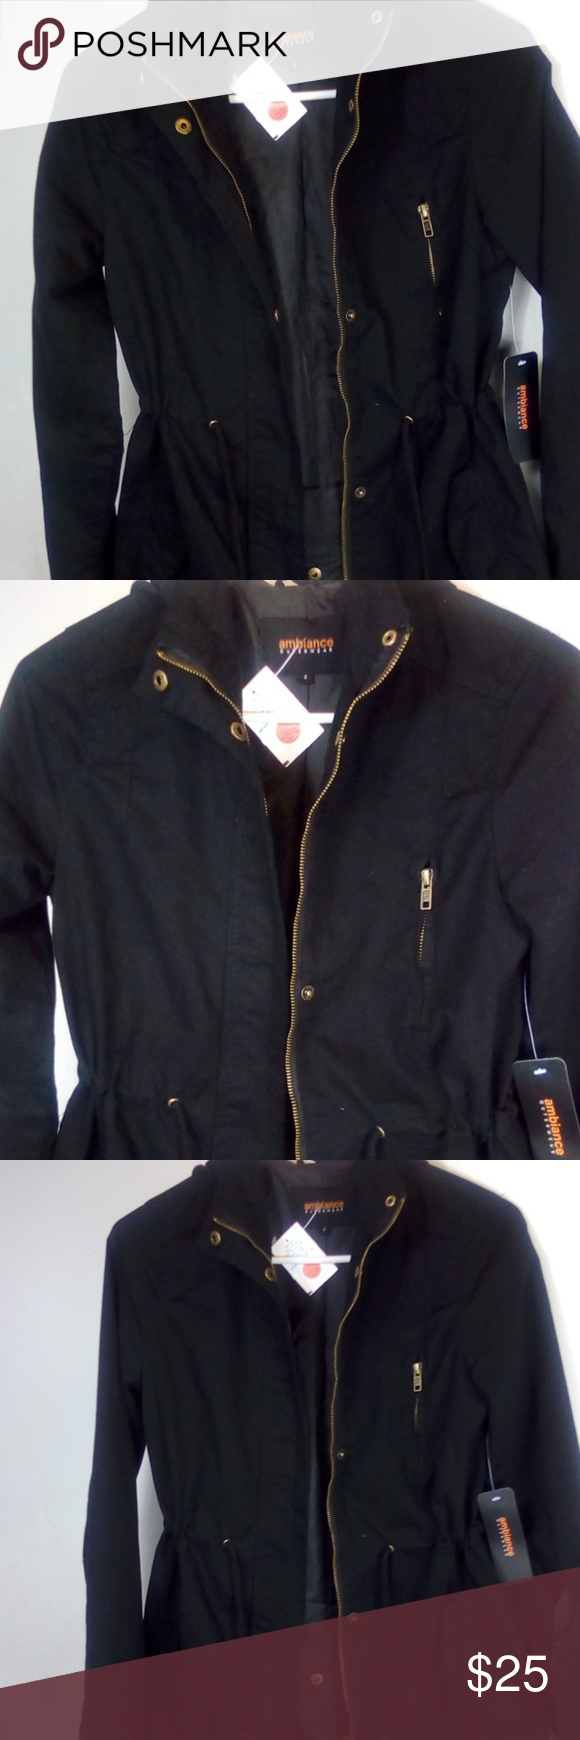 Hooded Jacket By Ambiance Outerwear Jackets Clothes Design Hooded Jacket [ 1740 x 580 Pixel ]